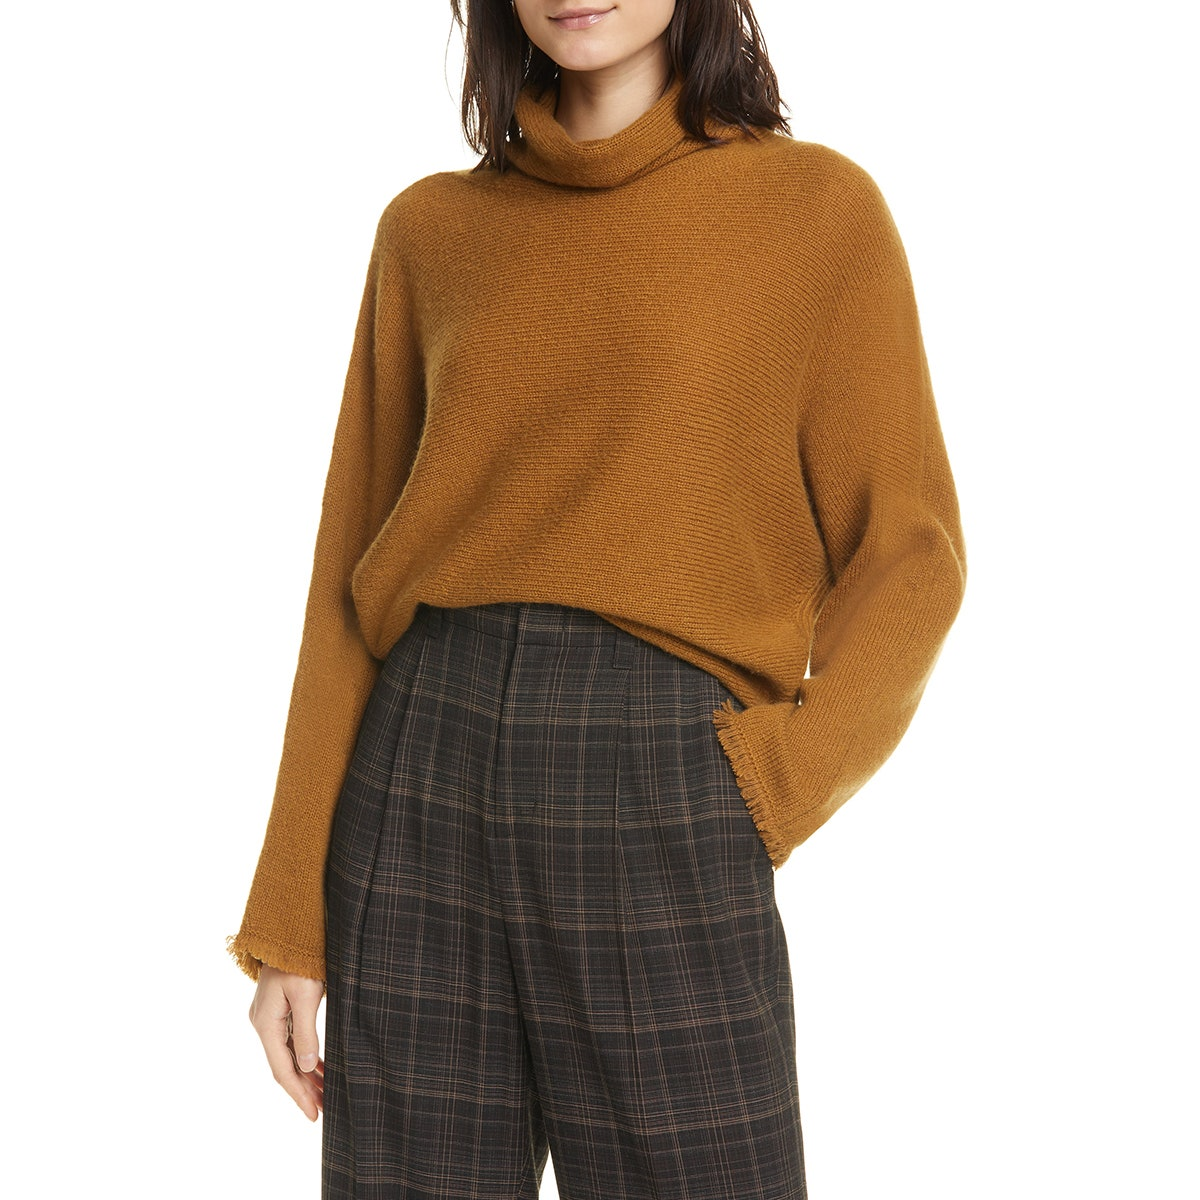 mustard vince sweater with fringe sleeves